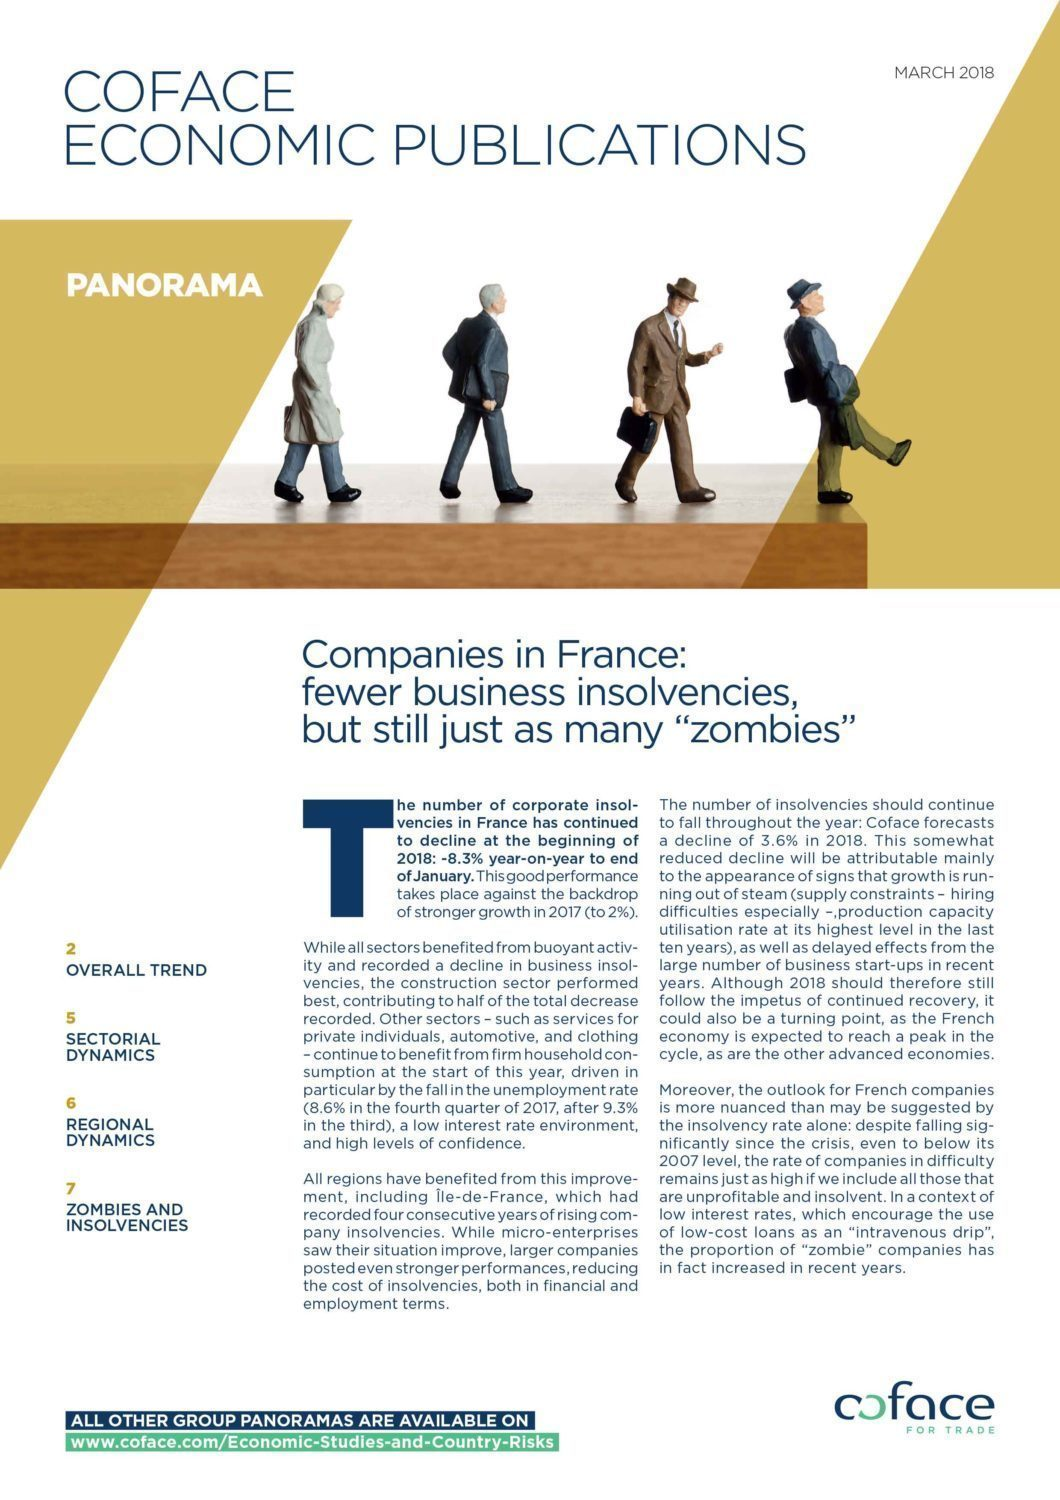 "Companies in France: fewer business insolvencies, but still just as many ""zombies"""